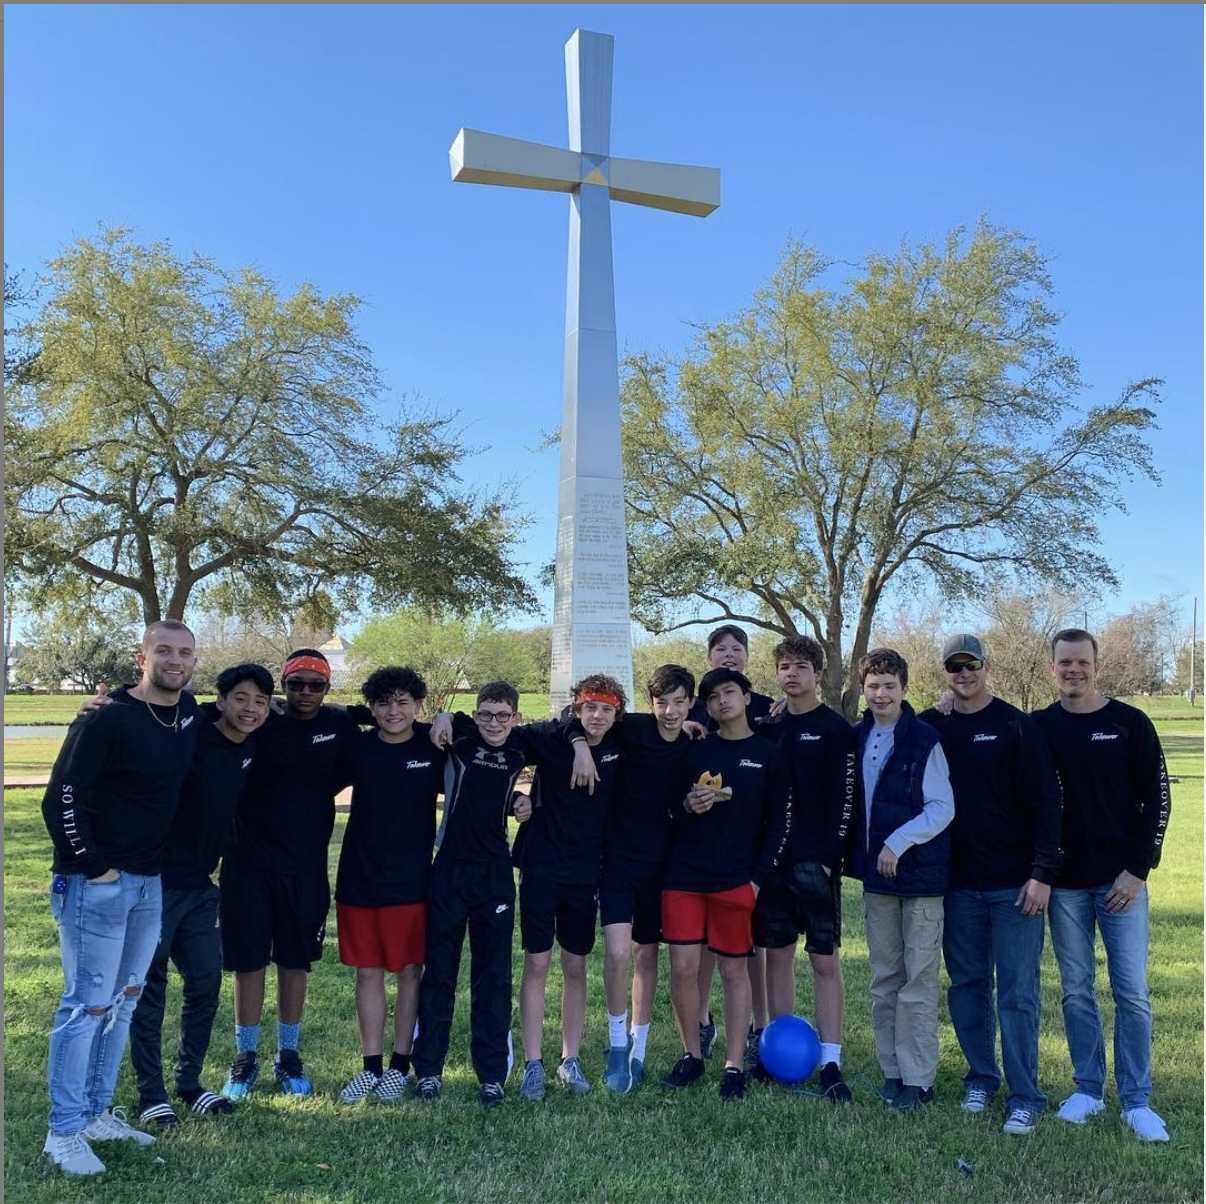 """Thanks, kids, for changing my life - over, and over, and over again. All the B.O., farts, and sleepless nights were all SO worth it. Jesus worked miracles through these kids this weekend. I forever will be changed by these young MEN."""